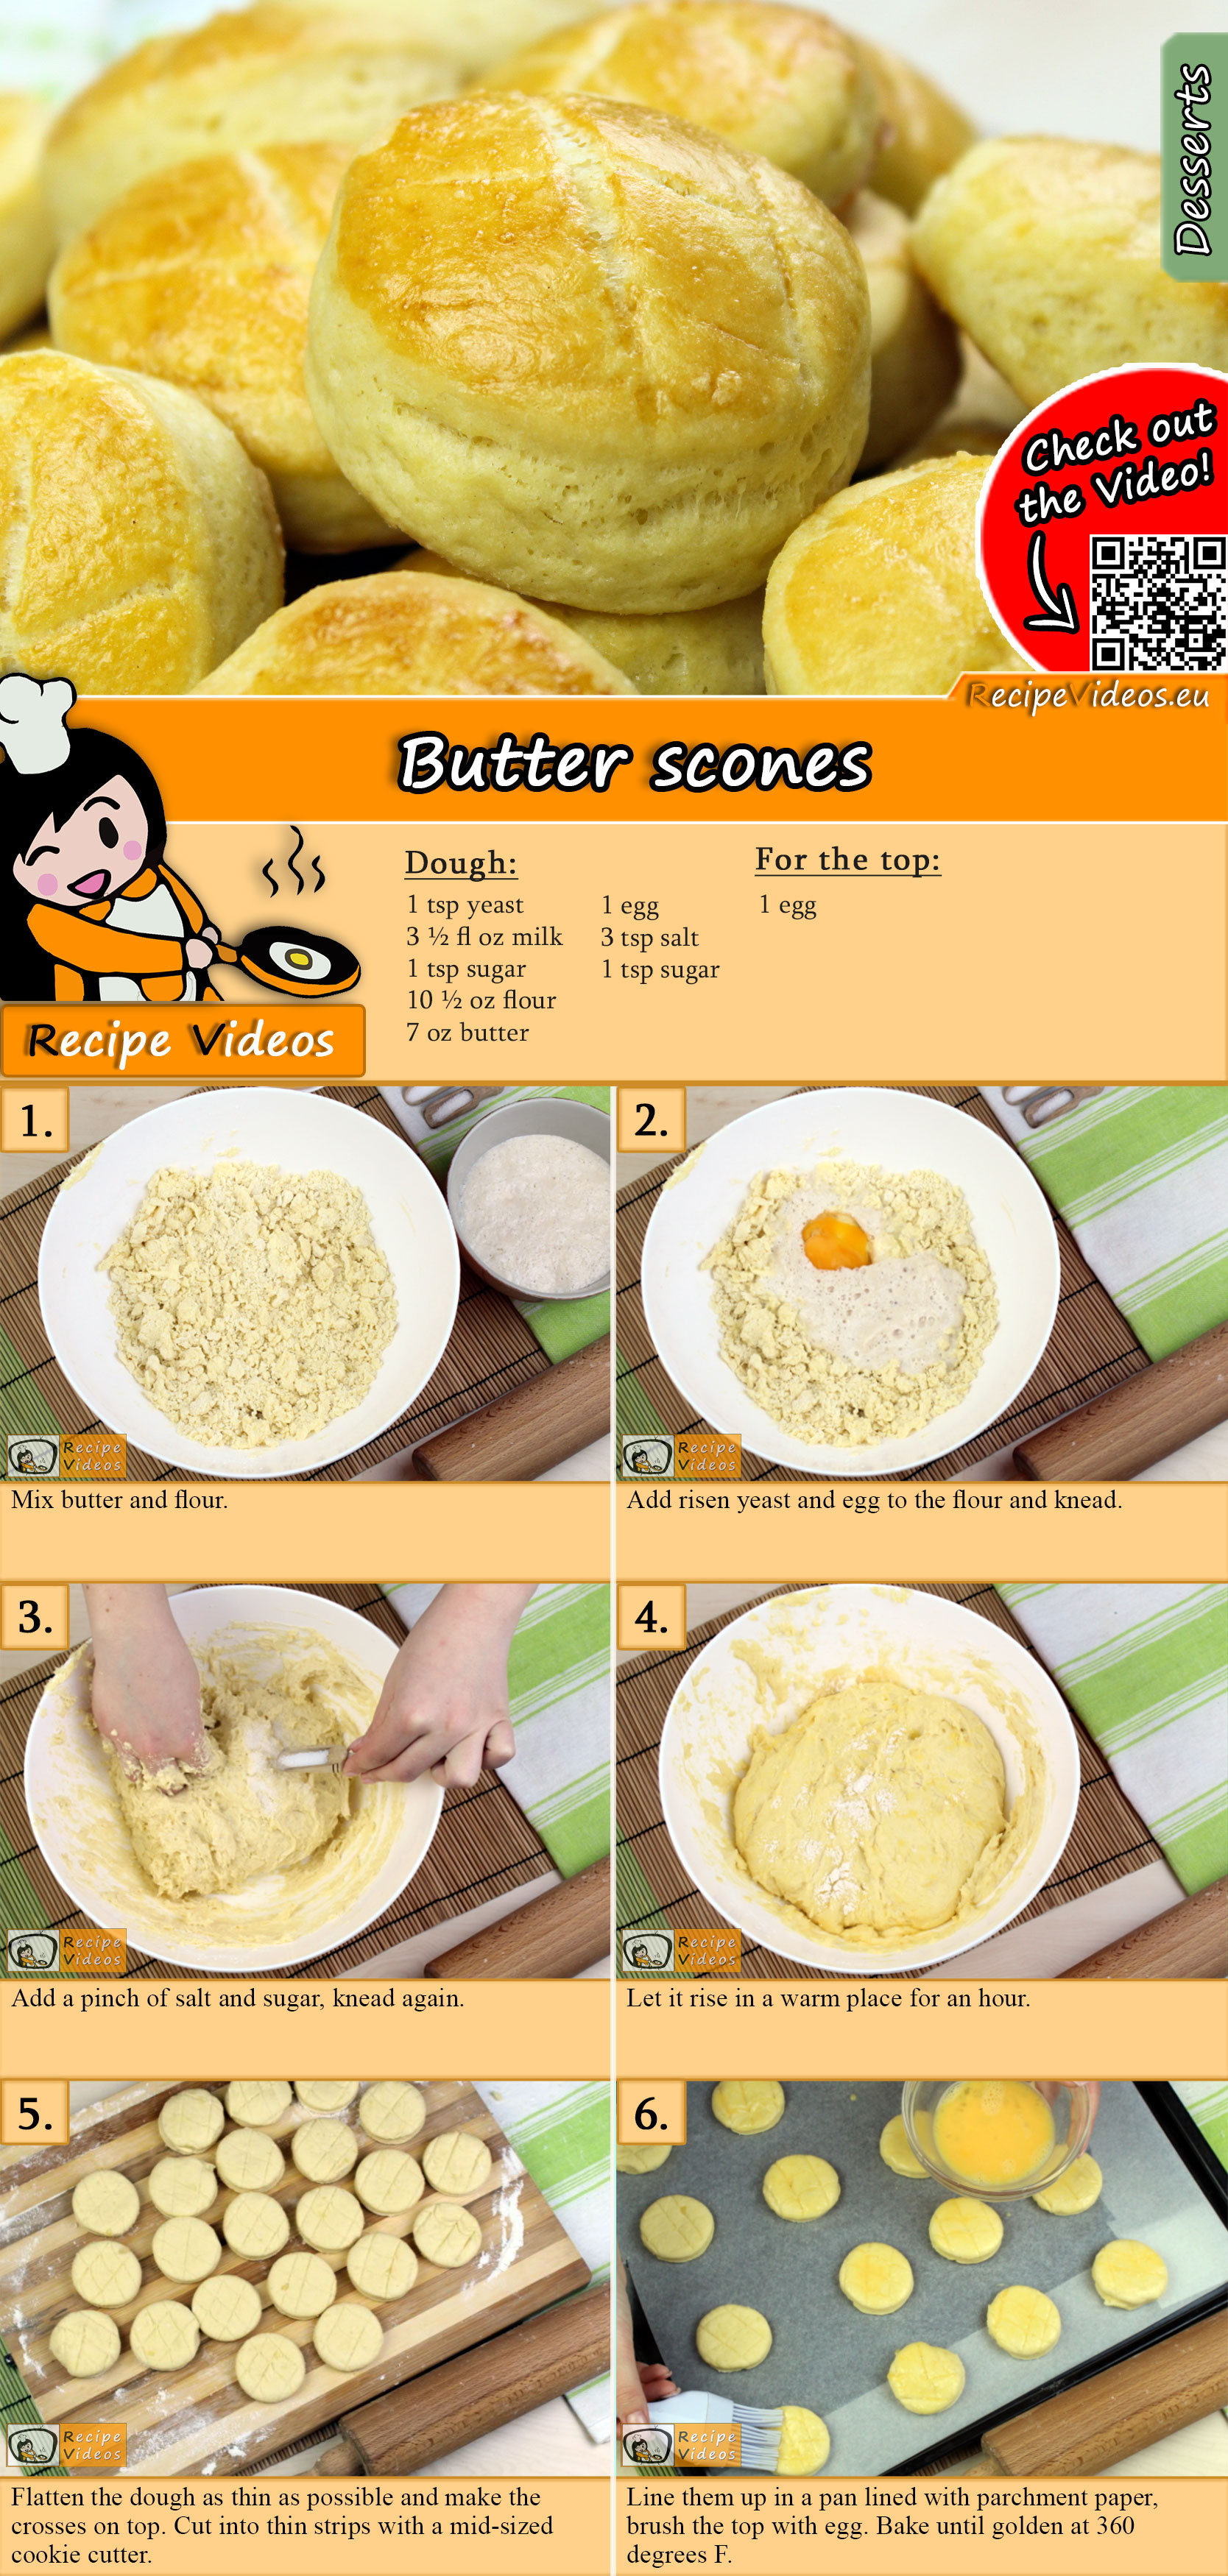 Butter scones recipe with video